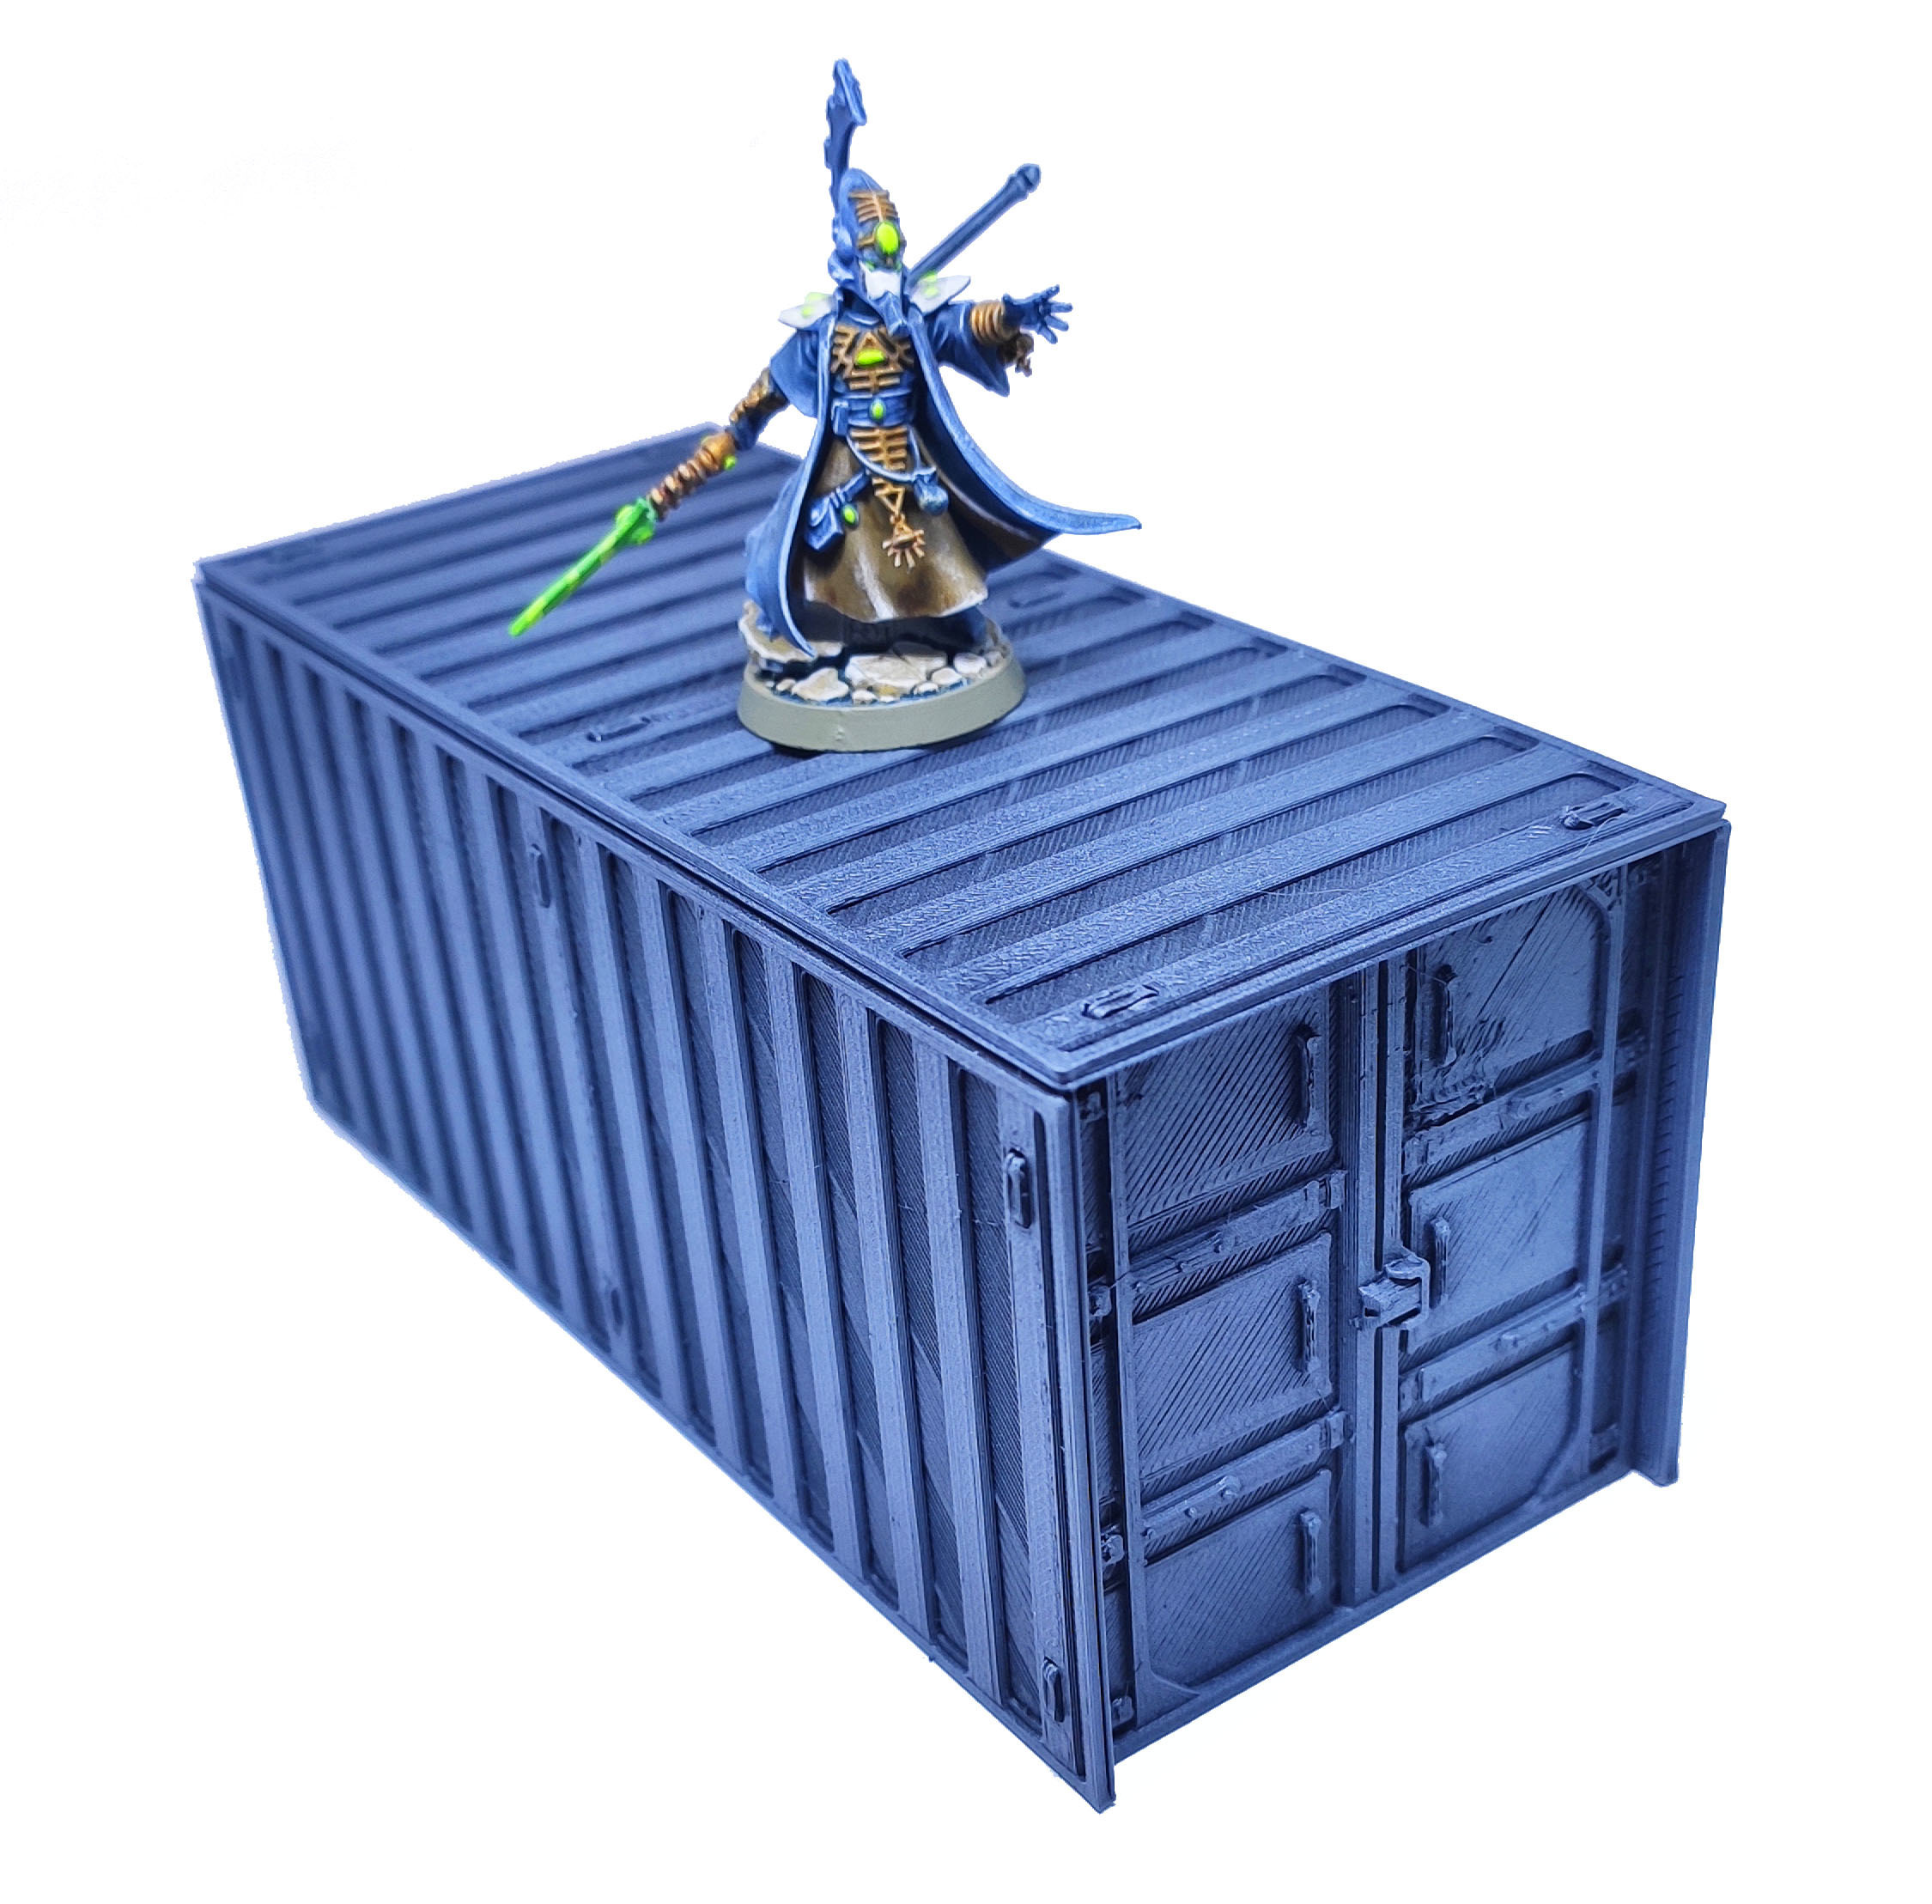 1.jpg Download free STL file Containers for wargame terrain 6.25x6.25x15cm • Template to 3D print, Alario